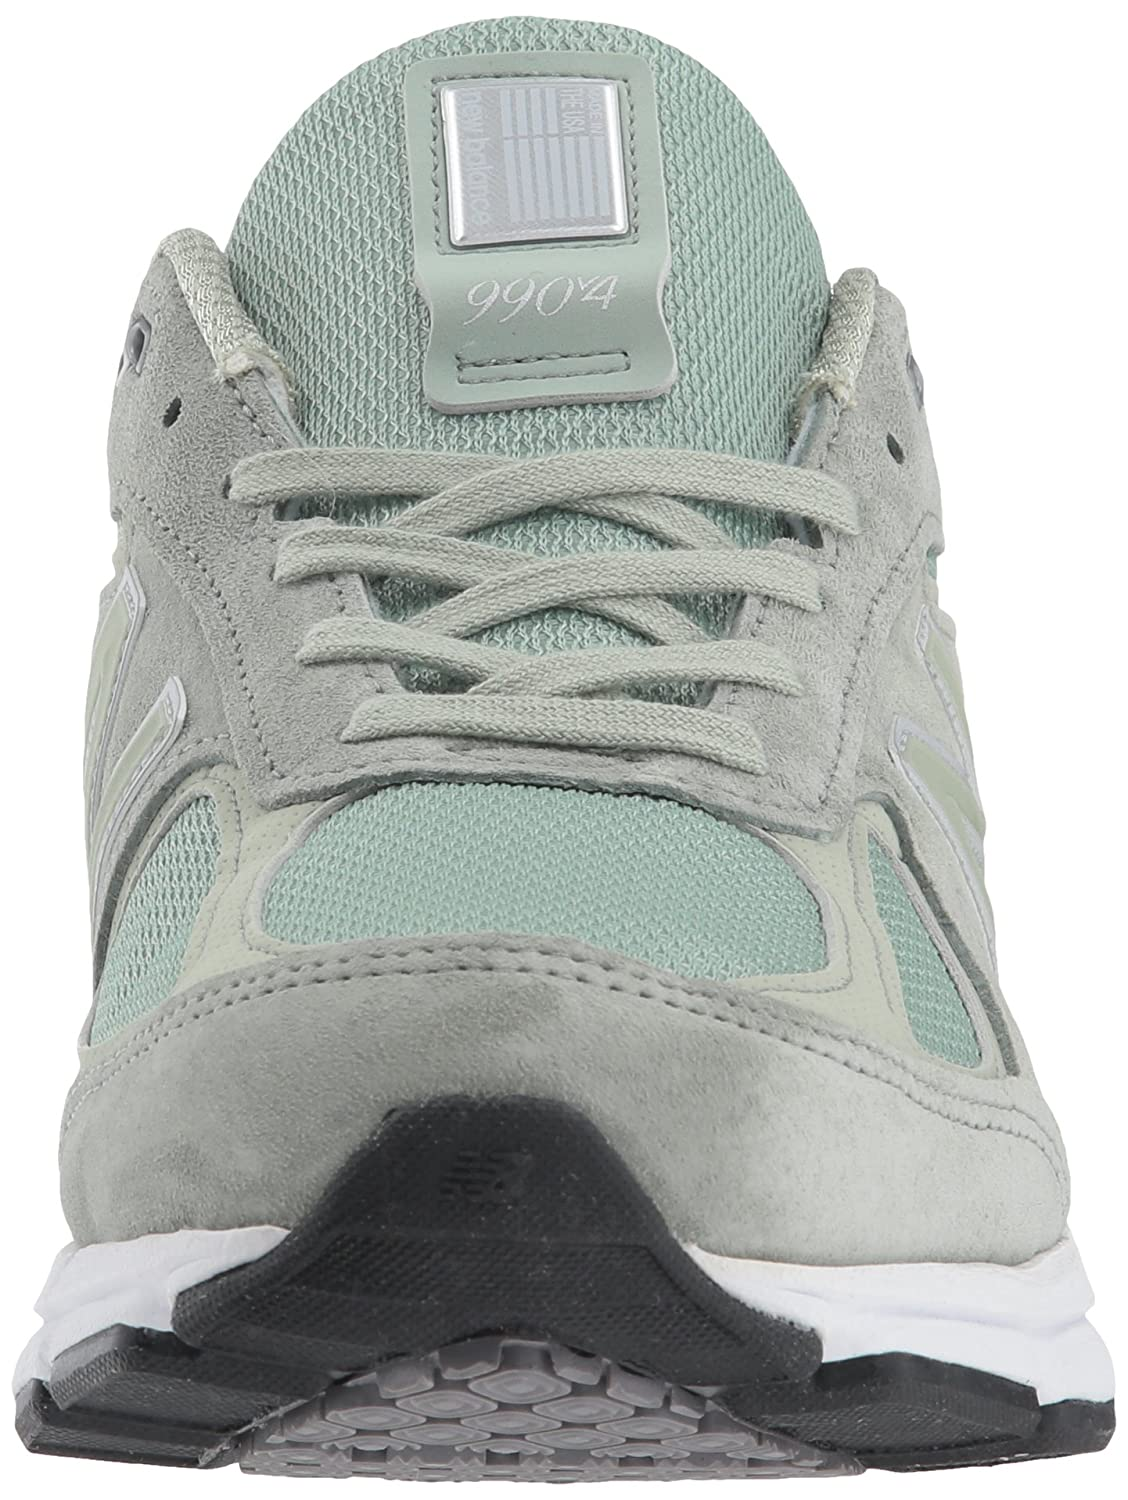 New-Balance-990-990v4-Classicc-Retro-Fashion-Sneaker-Made-in-USA thumbnail 96